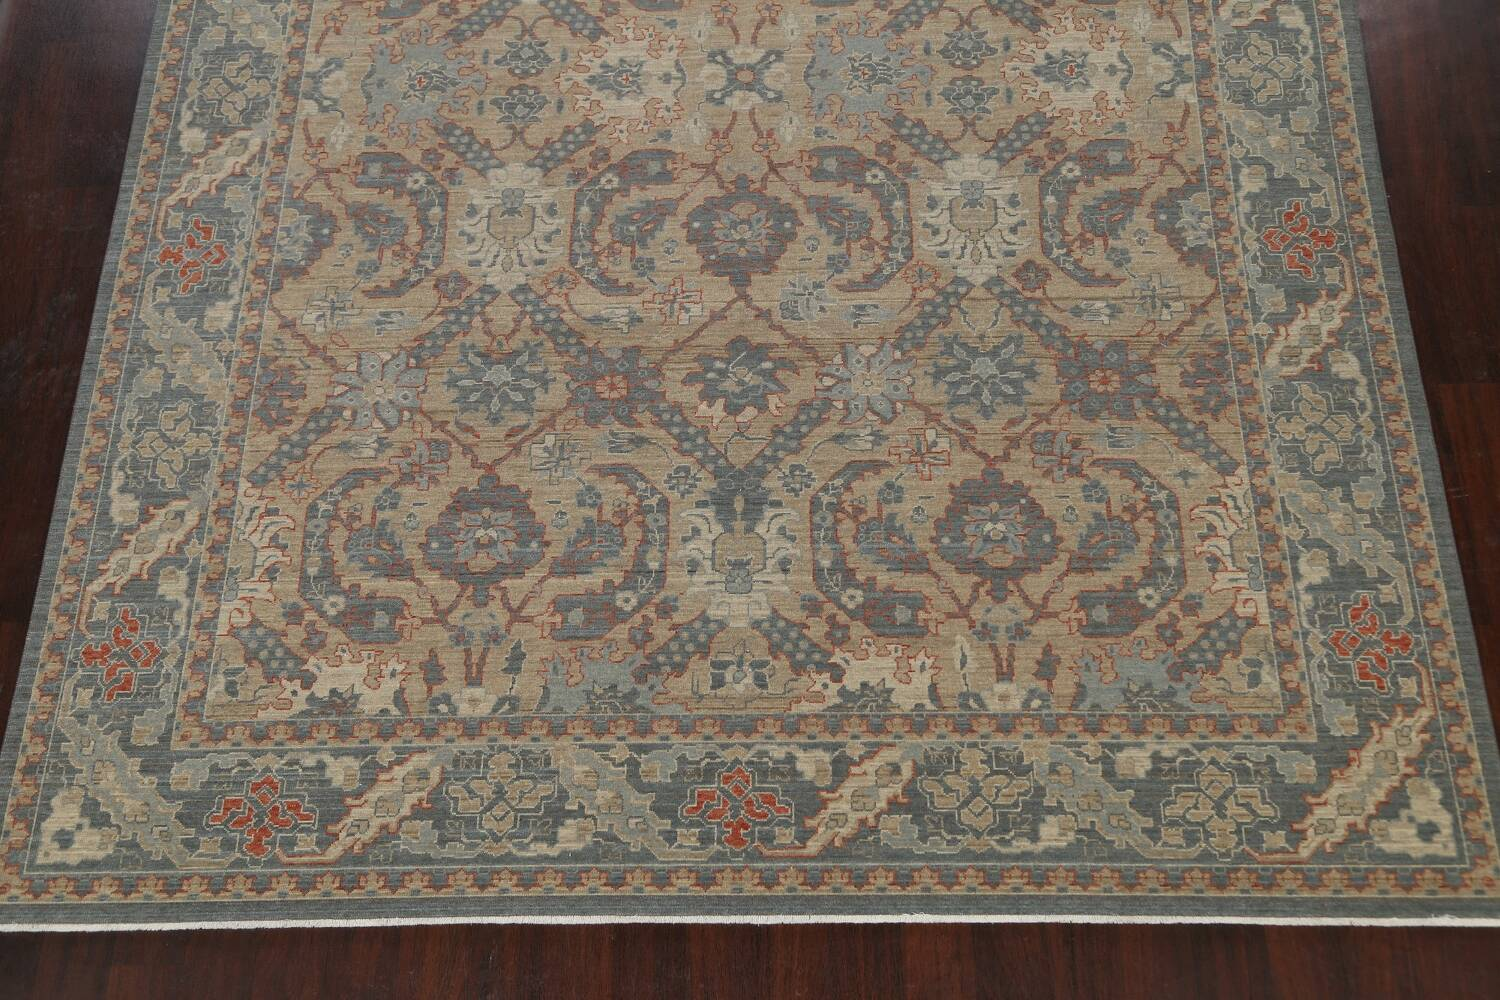 Silver Washed Ziegler Turkish Area Rug 9x12 image 8